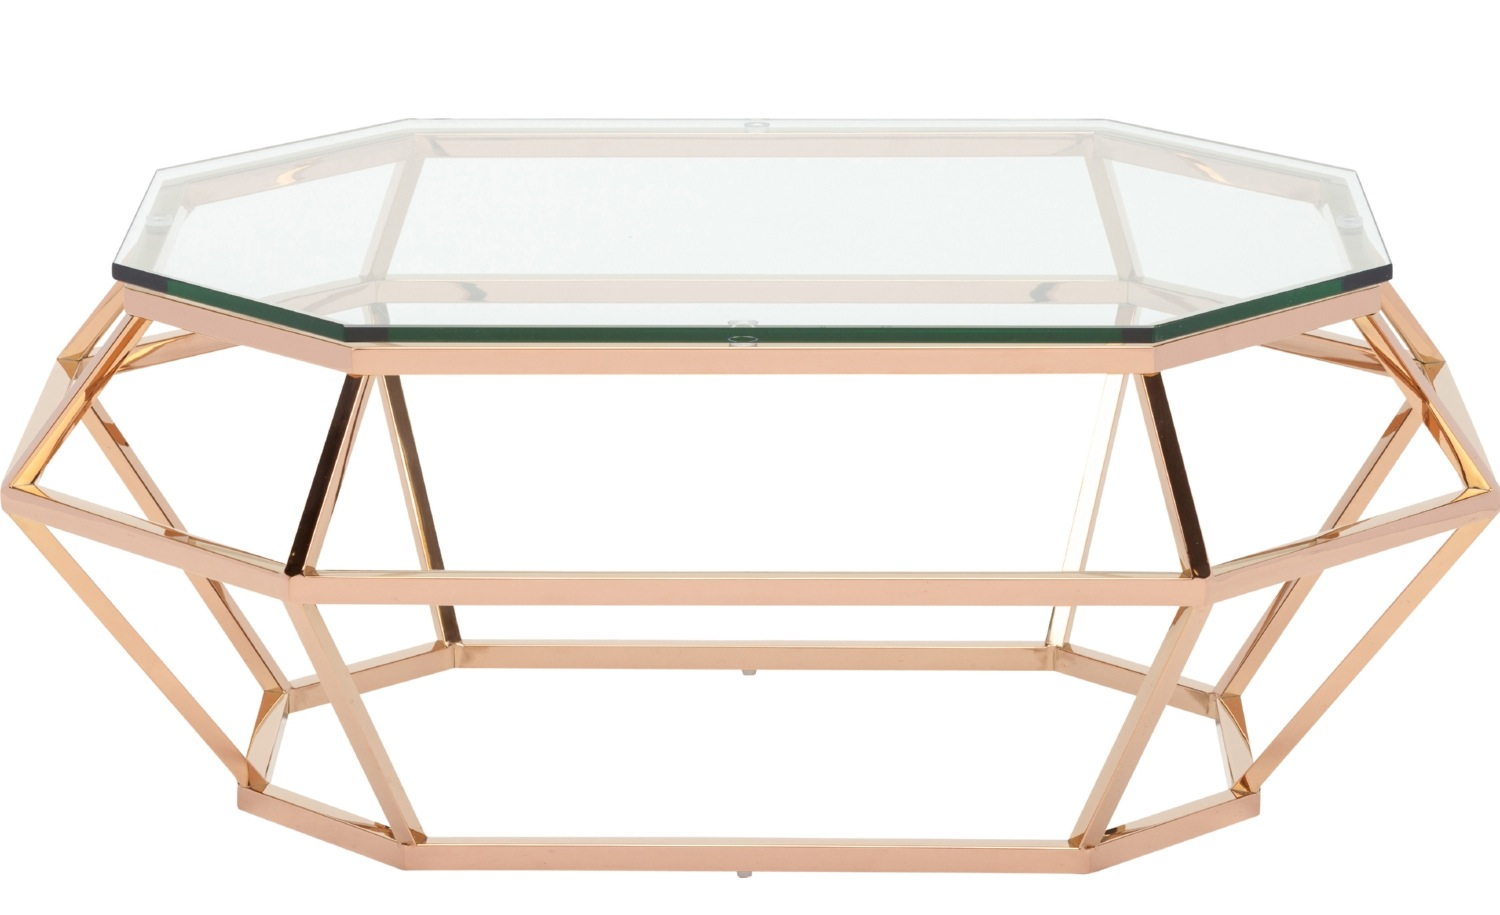 diamond-rectangular-coffee-table-in-rose-gold.jpg